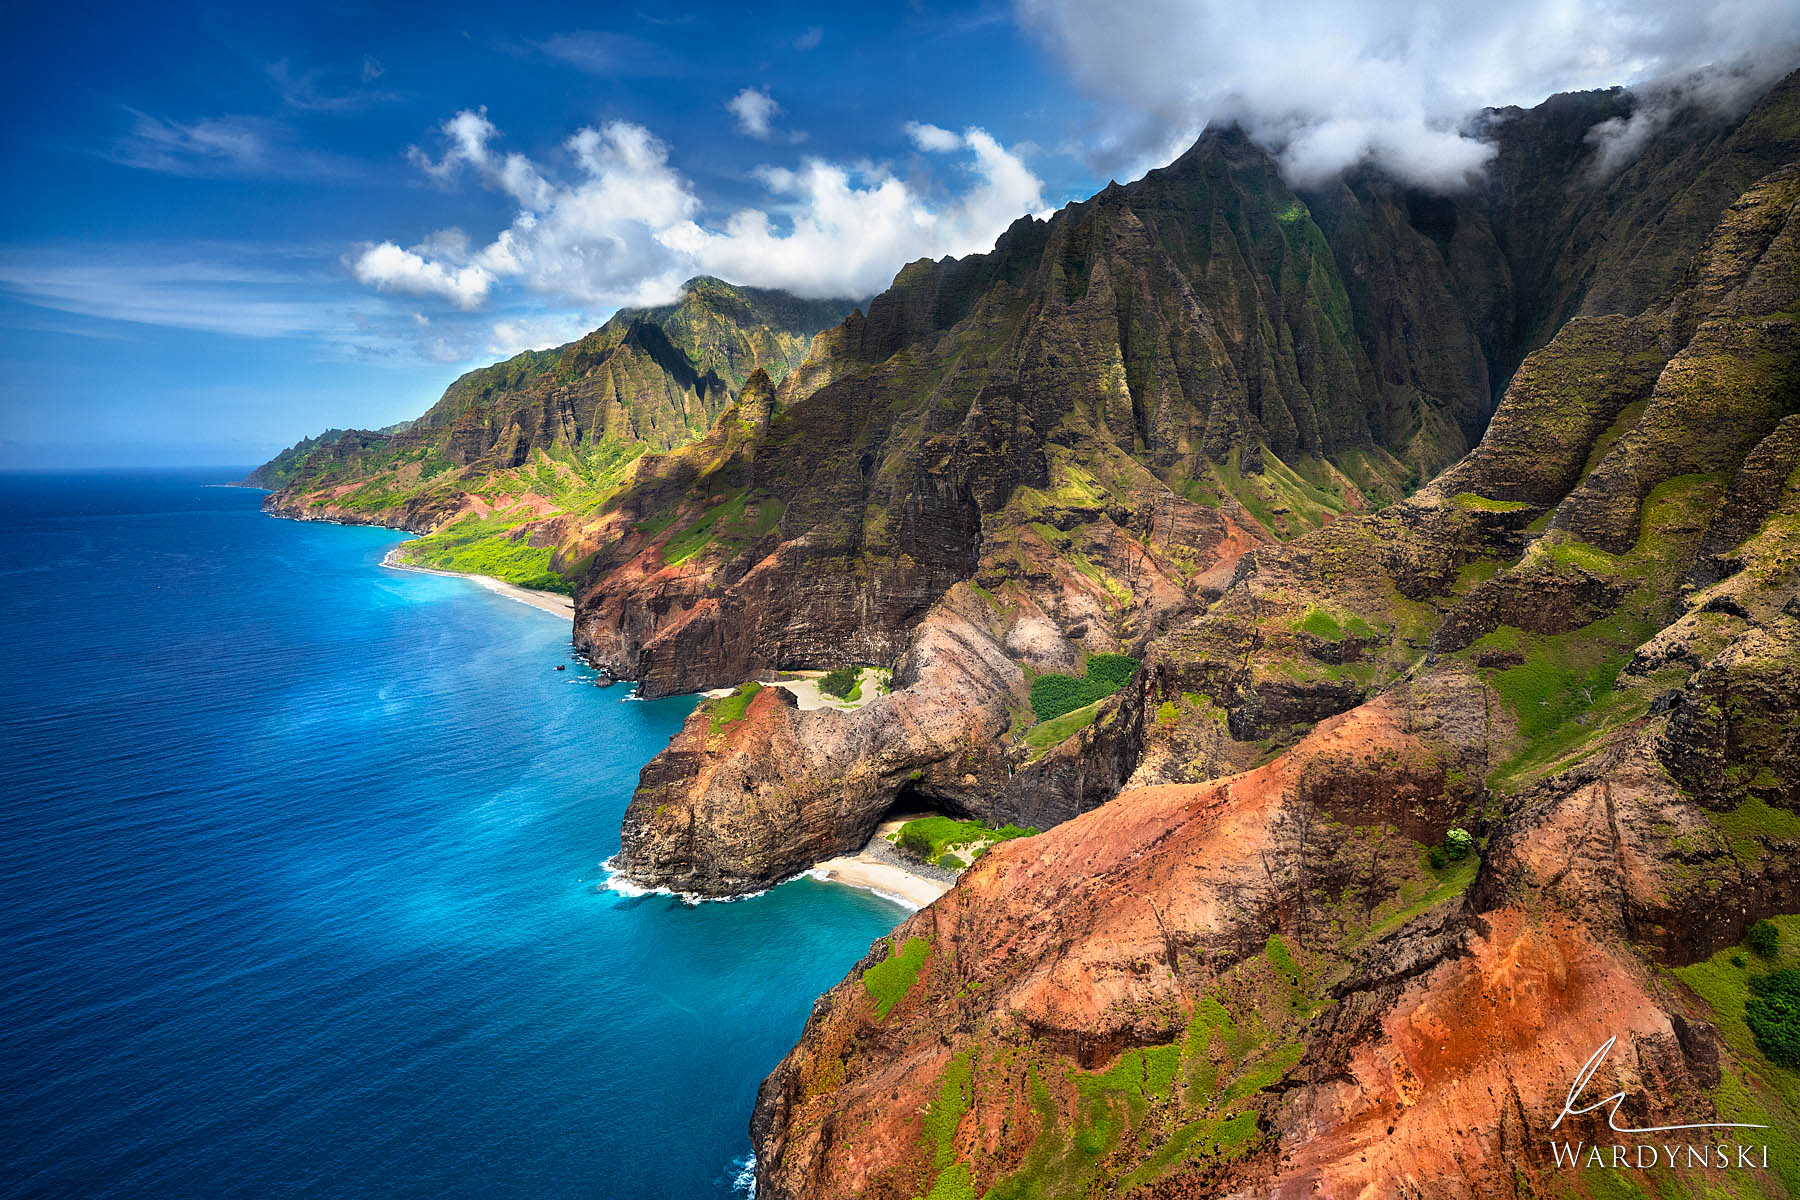 Fine Art Print | Limited Edition of 100  Sun shines down on the Na Pali Cost during a beautiful summer day on the Hawaiian island...